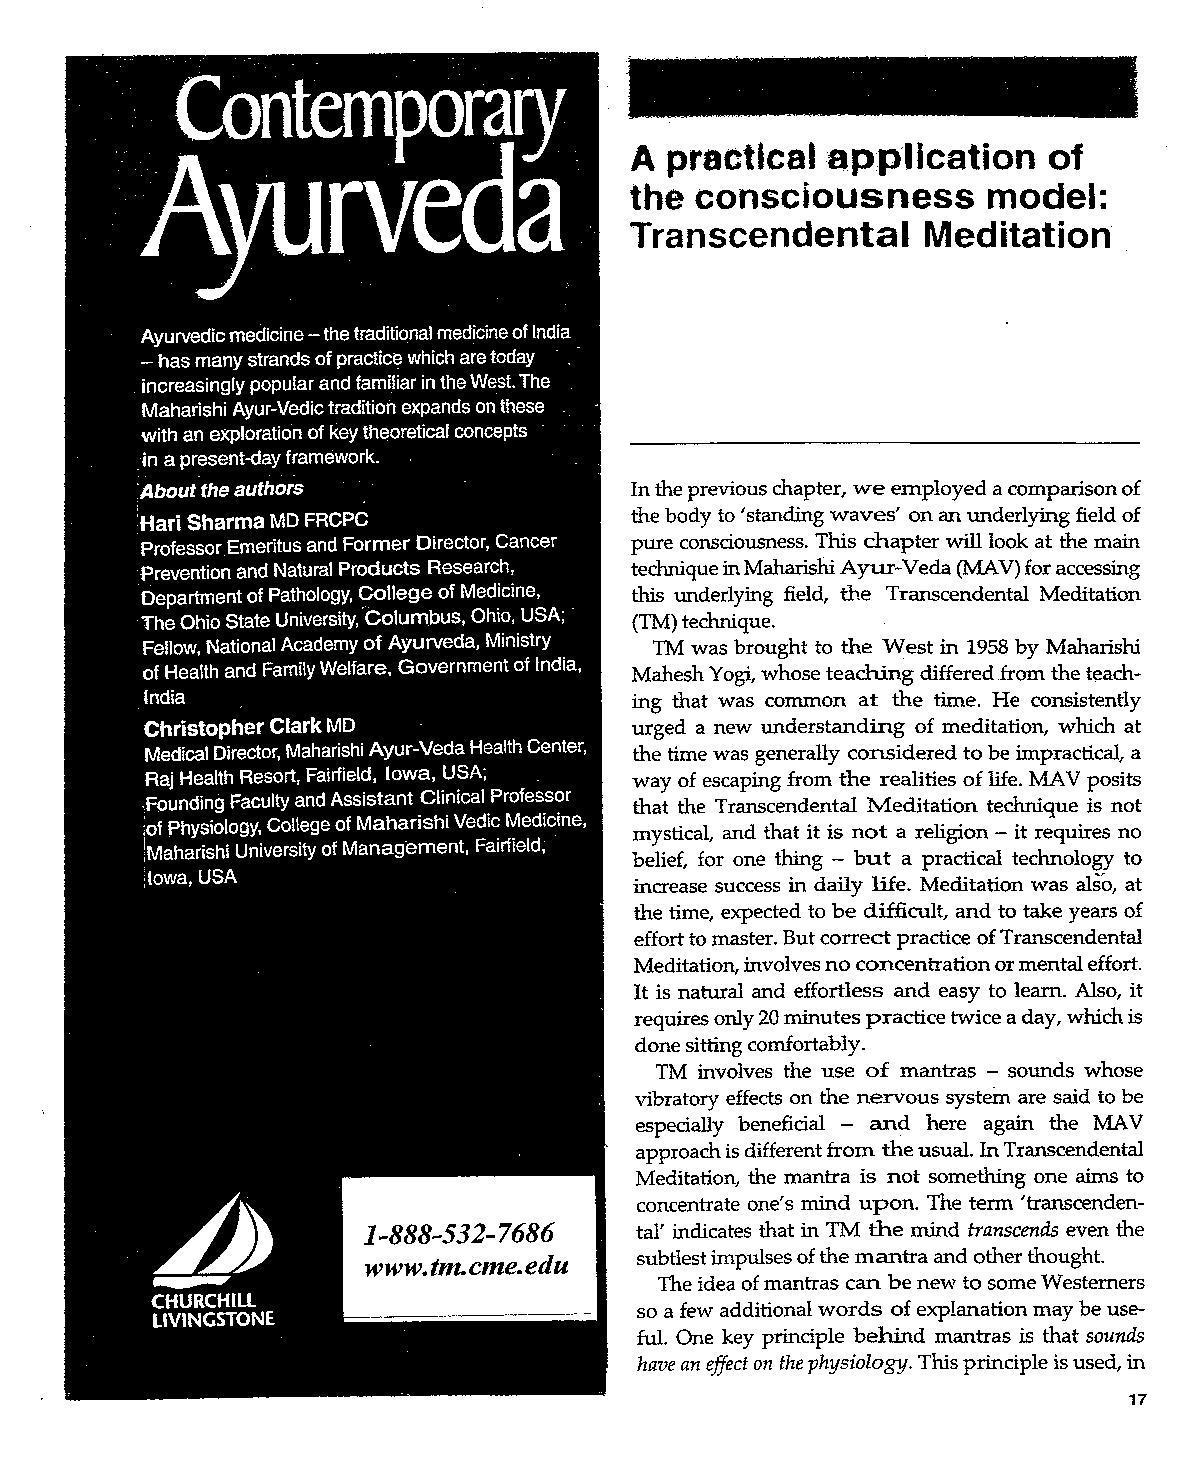 Contemporary_Ayurveda_Transcendental_Meditation_pg_17.jpg